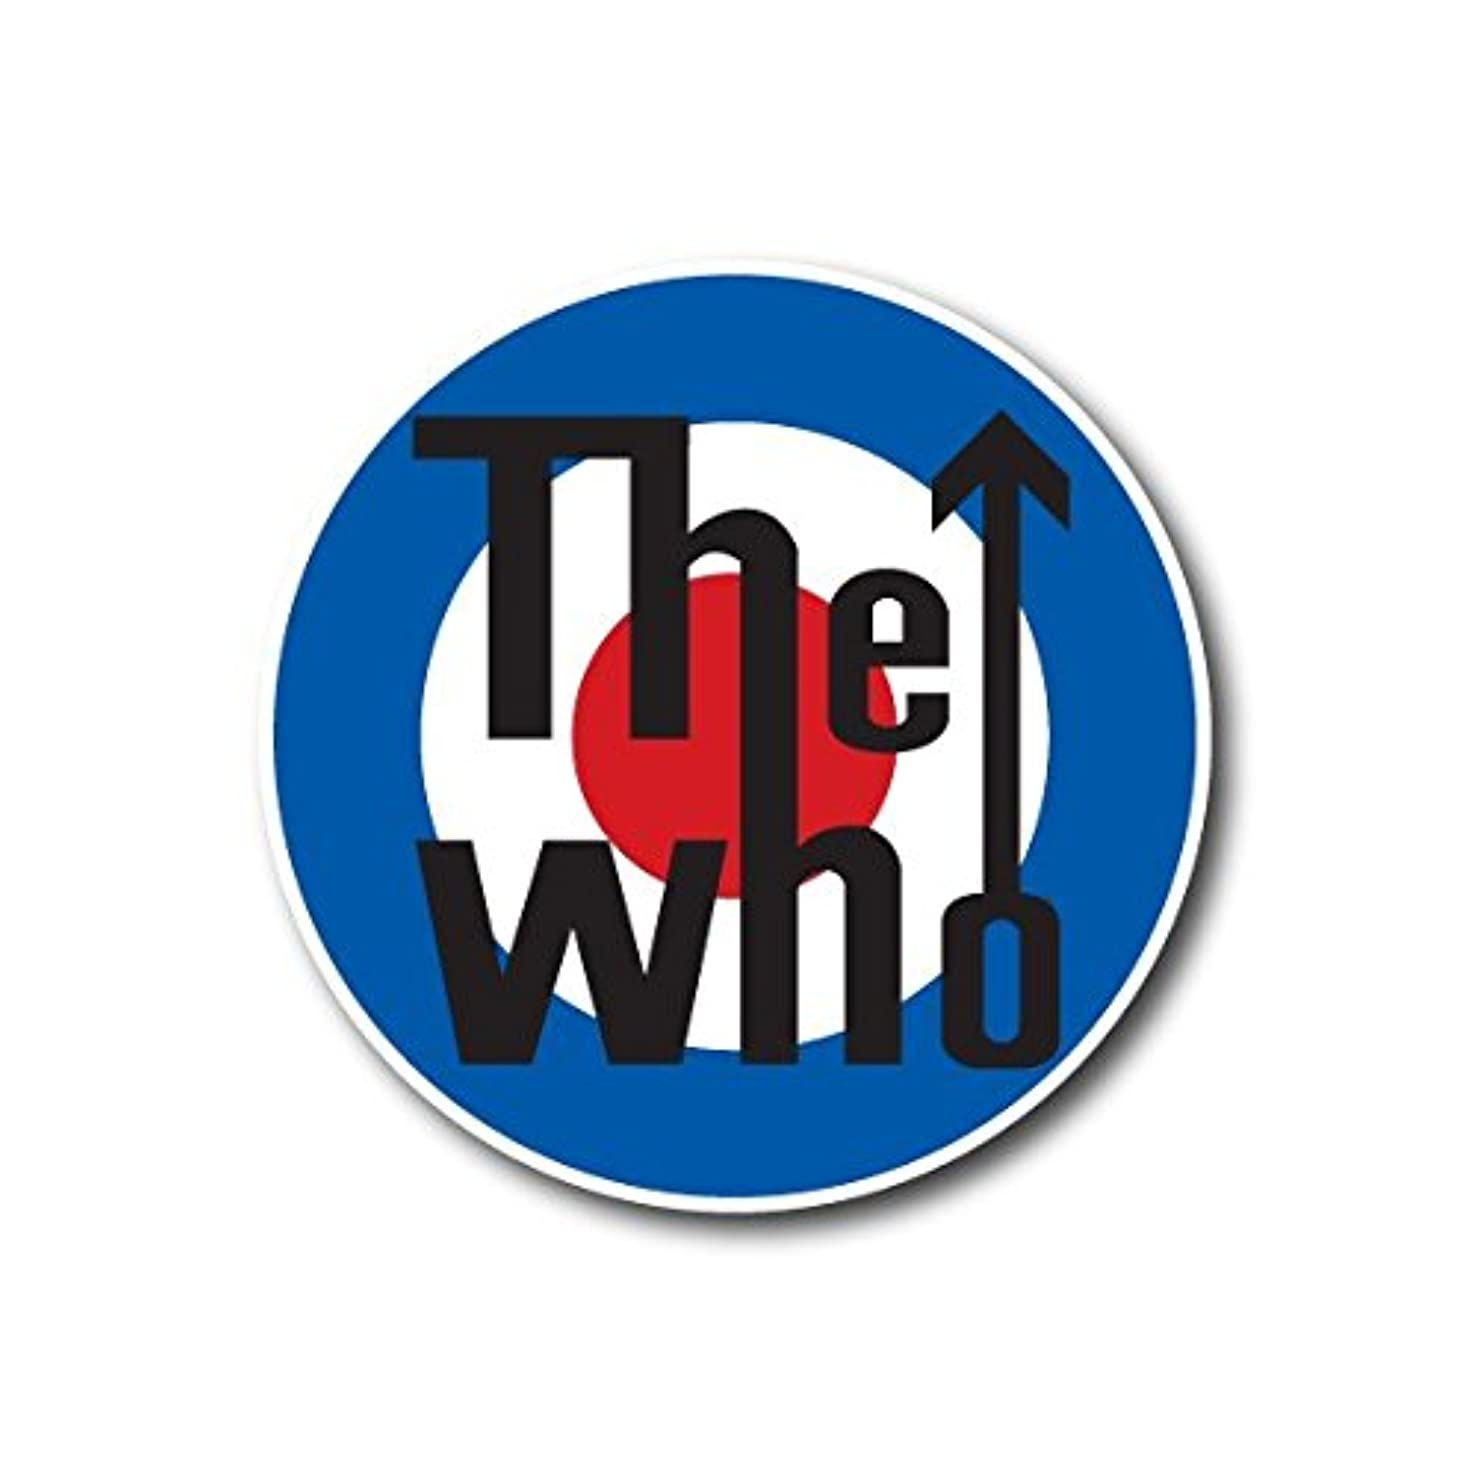 The Who Sticker Rock Band Decal for Car Window, Bumper, Laptop, Skateboard, Wall, ETC. (3